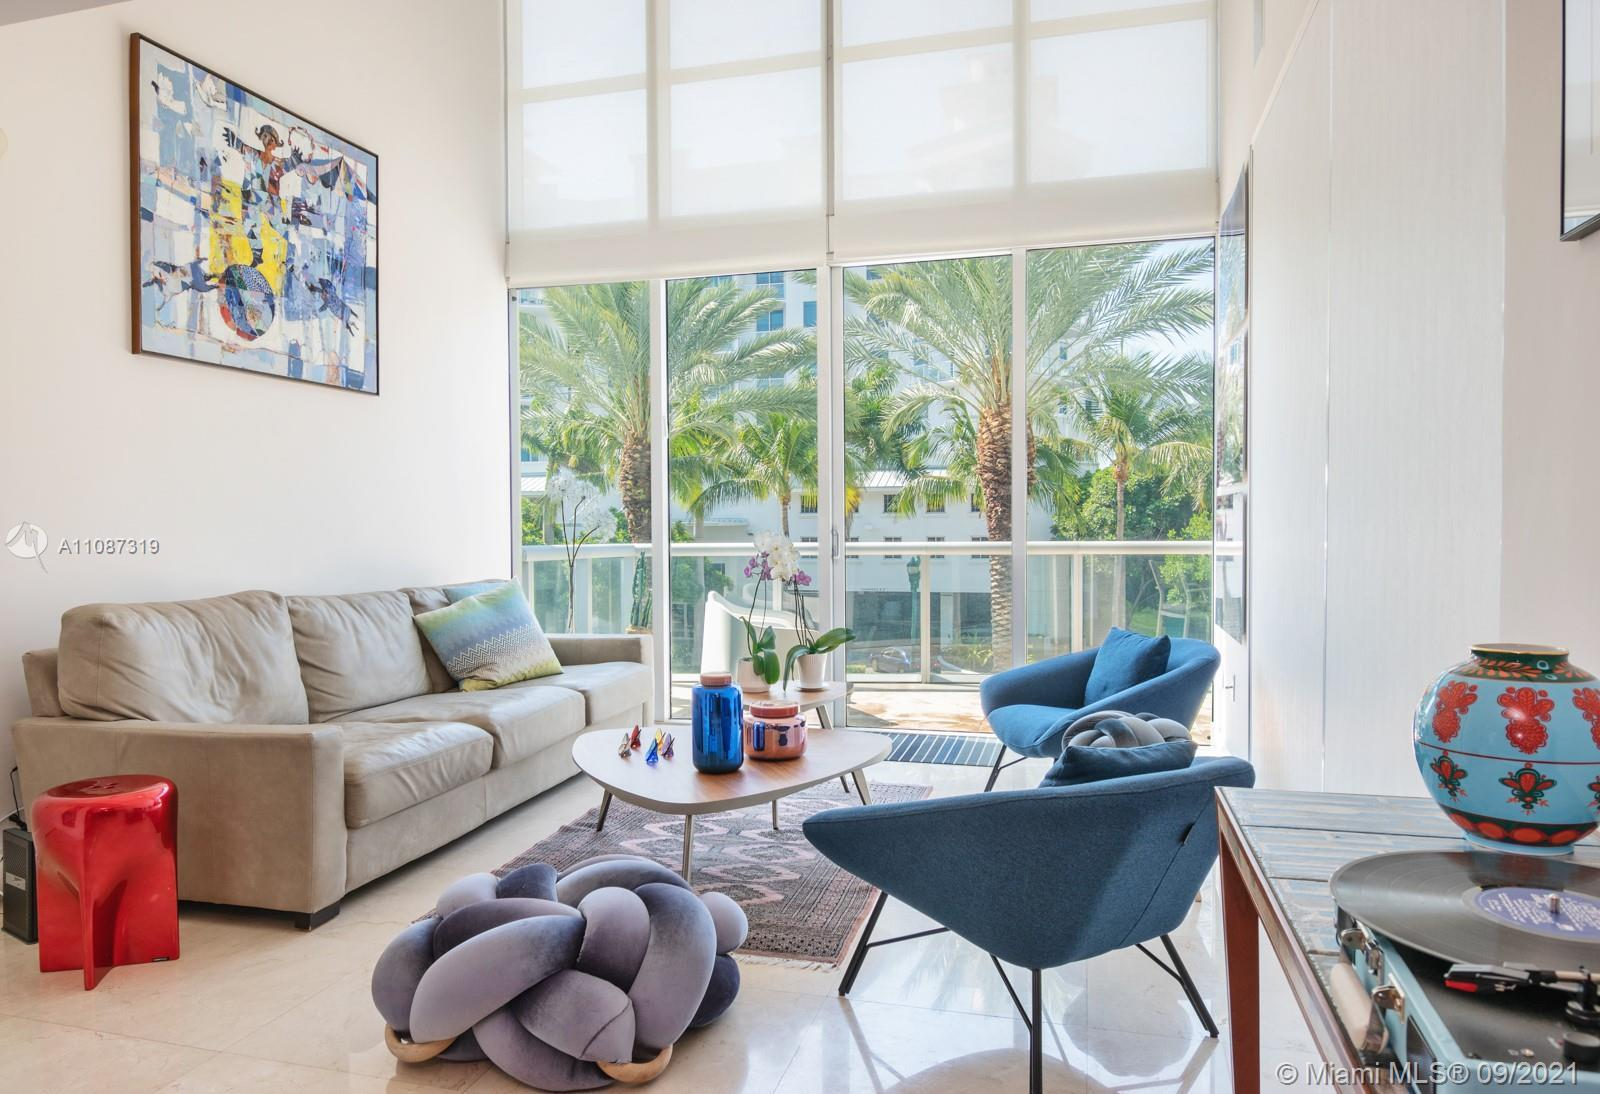 The Atrium is an amazing building in Aventura. This bright and spacious two-story unit with balcony